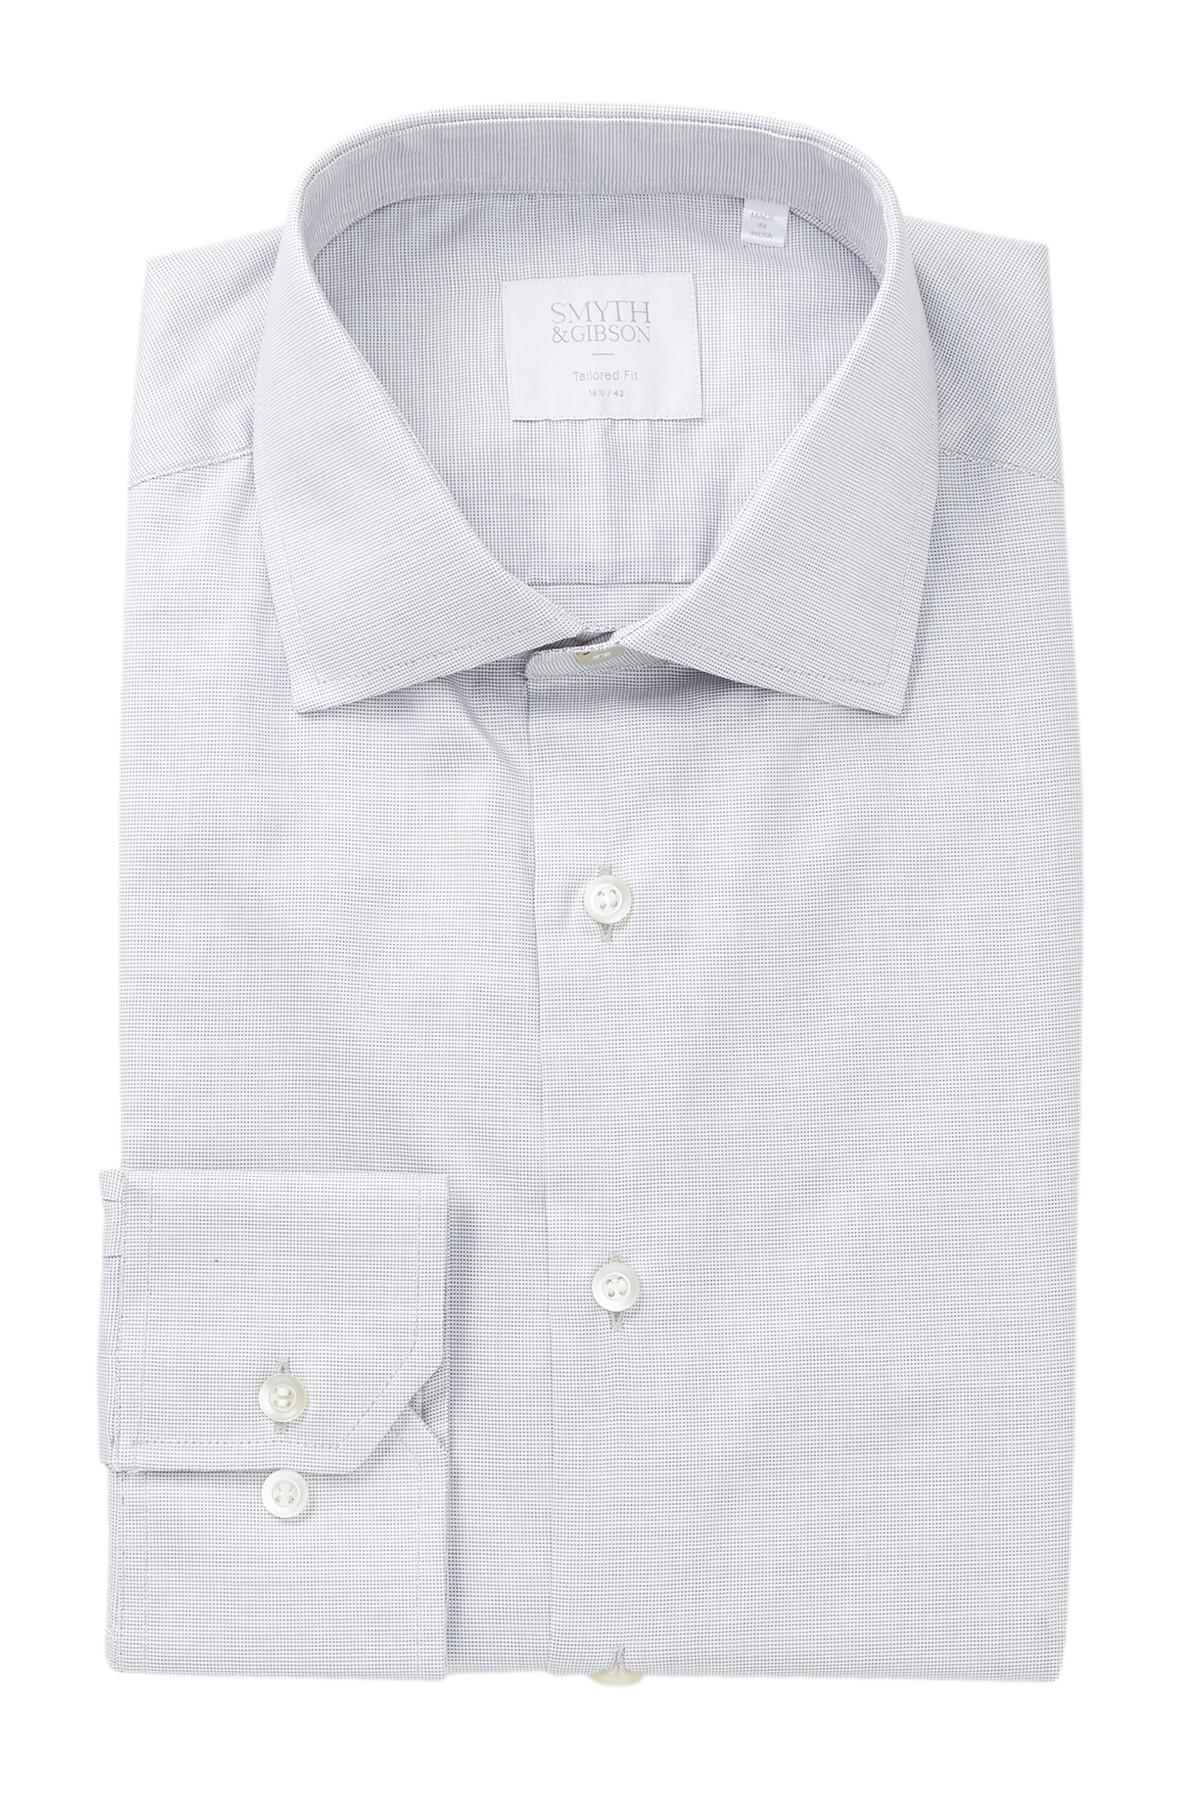 Lyst Smyth Gibson Square Dobby Tailored Fit Dress Shirt In Gray